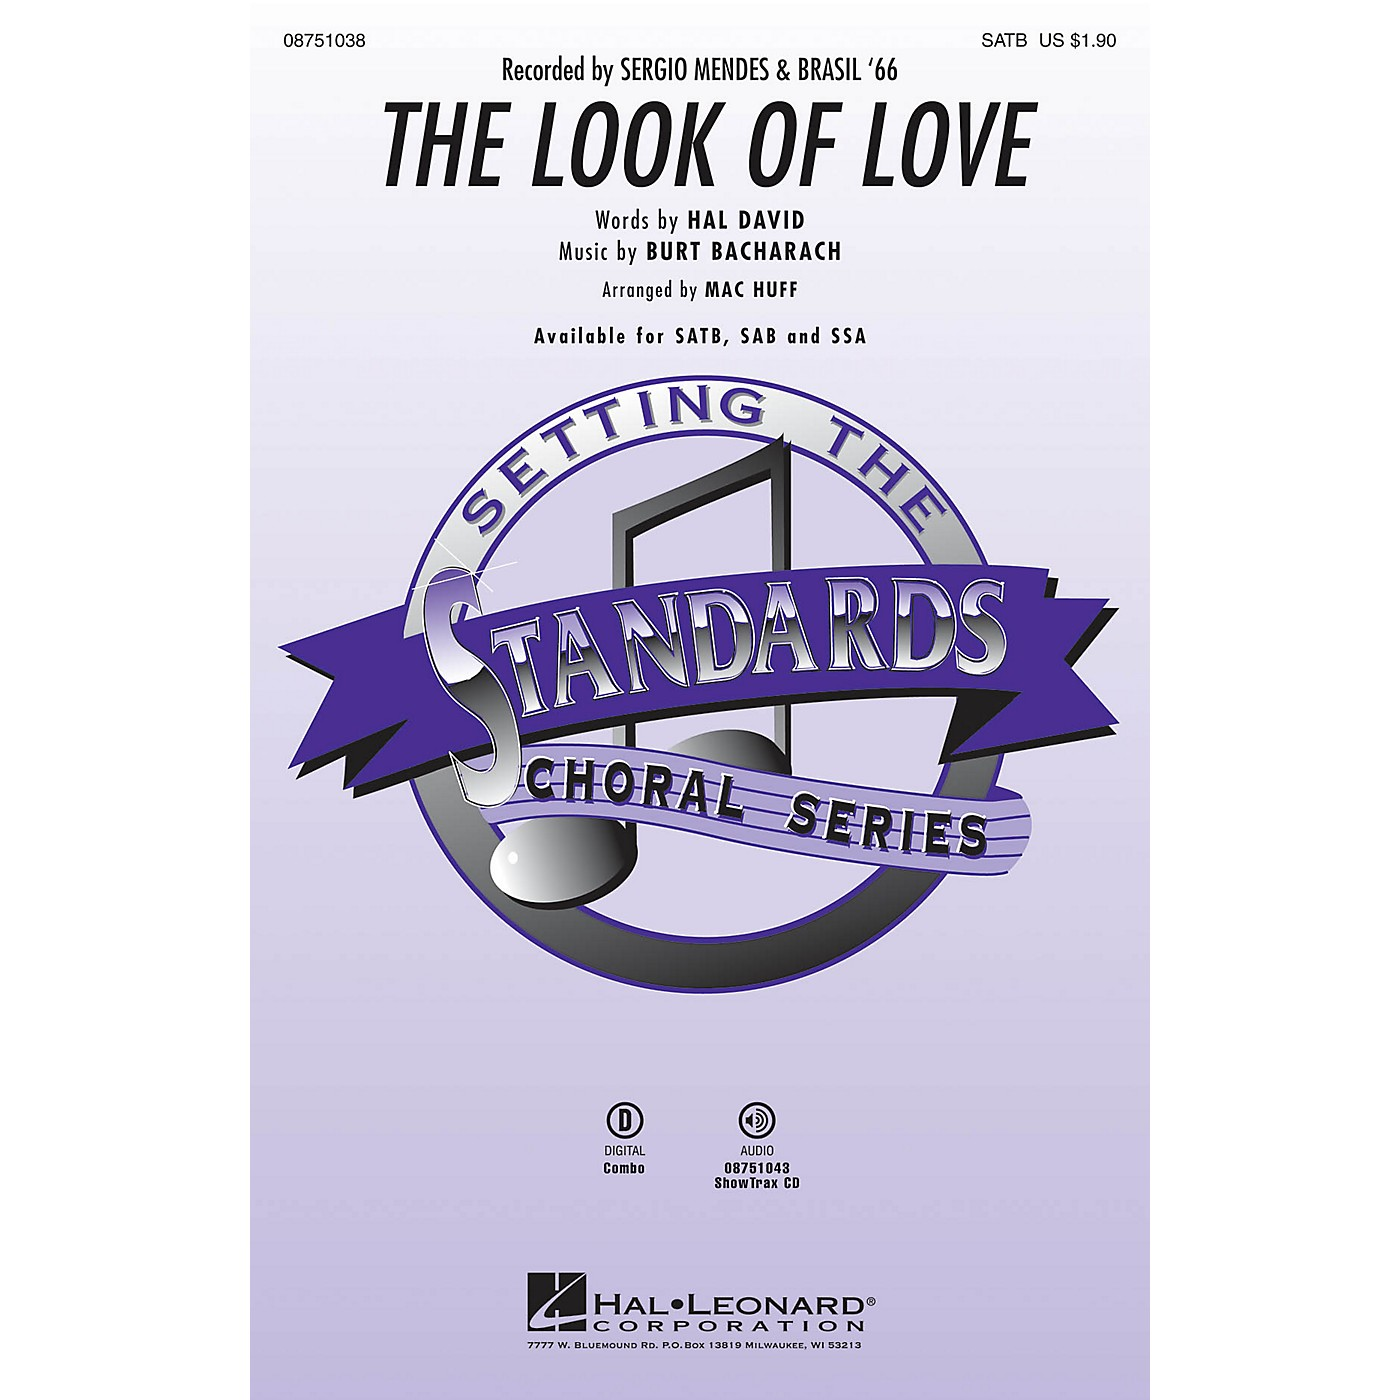 Hal Leonard The Look of Love SATB by Sergio Mendes & Brasil '66 arranged by Mac Huff thumbnail